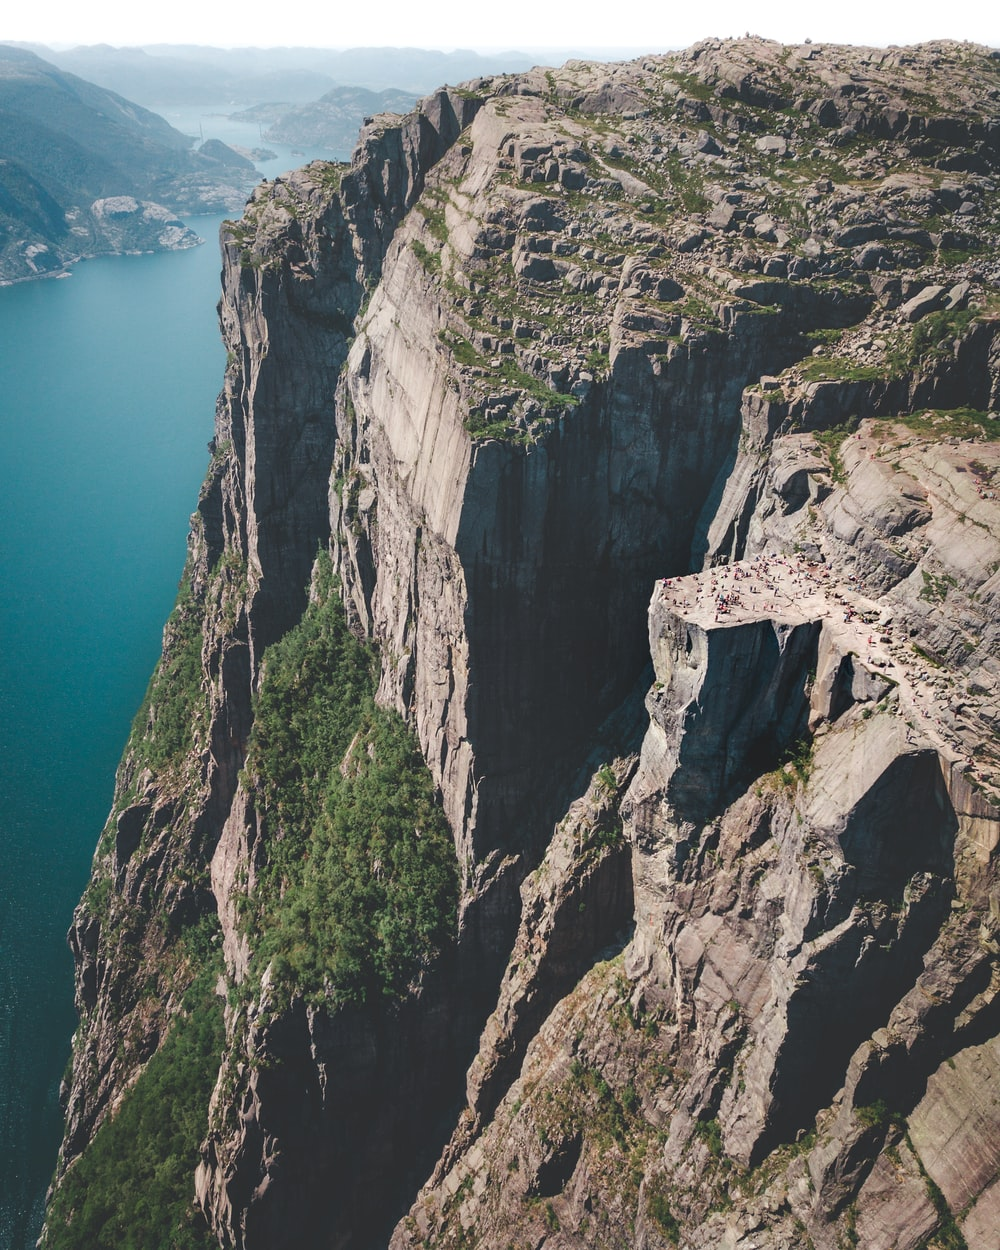 cliff near body of water during daytime